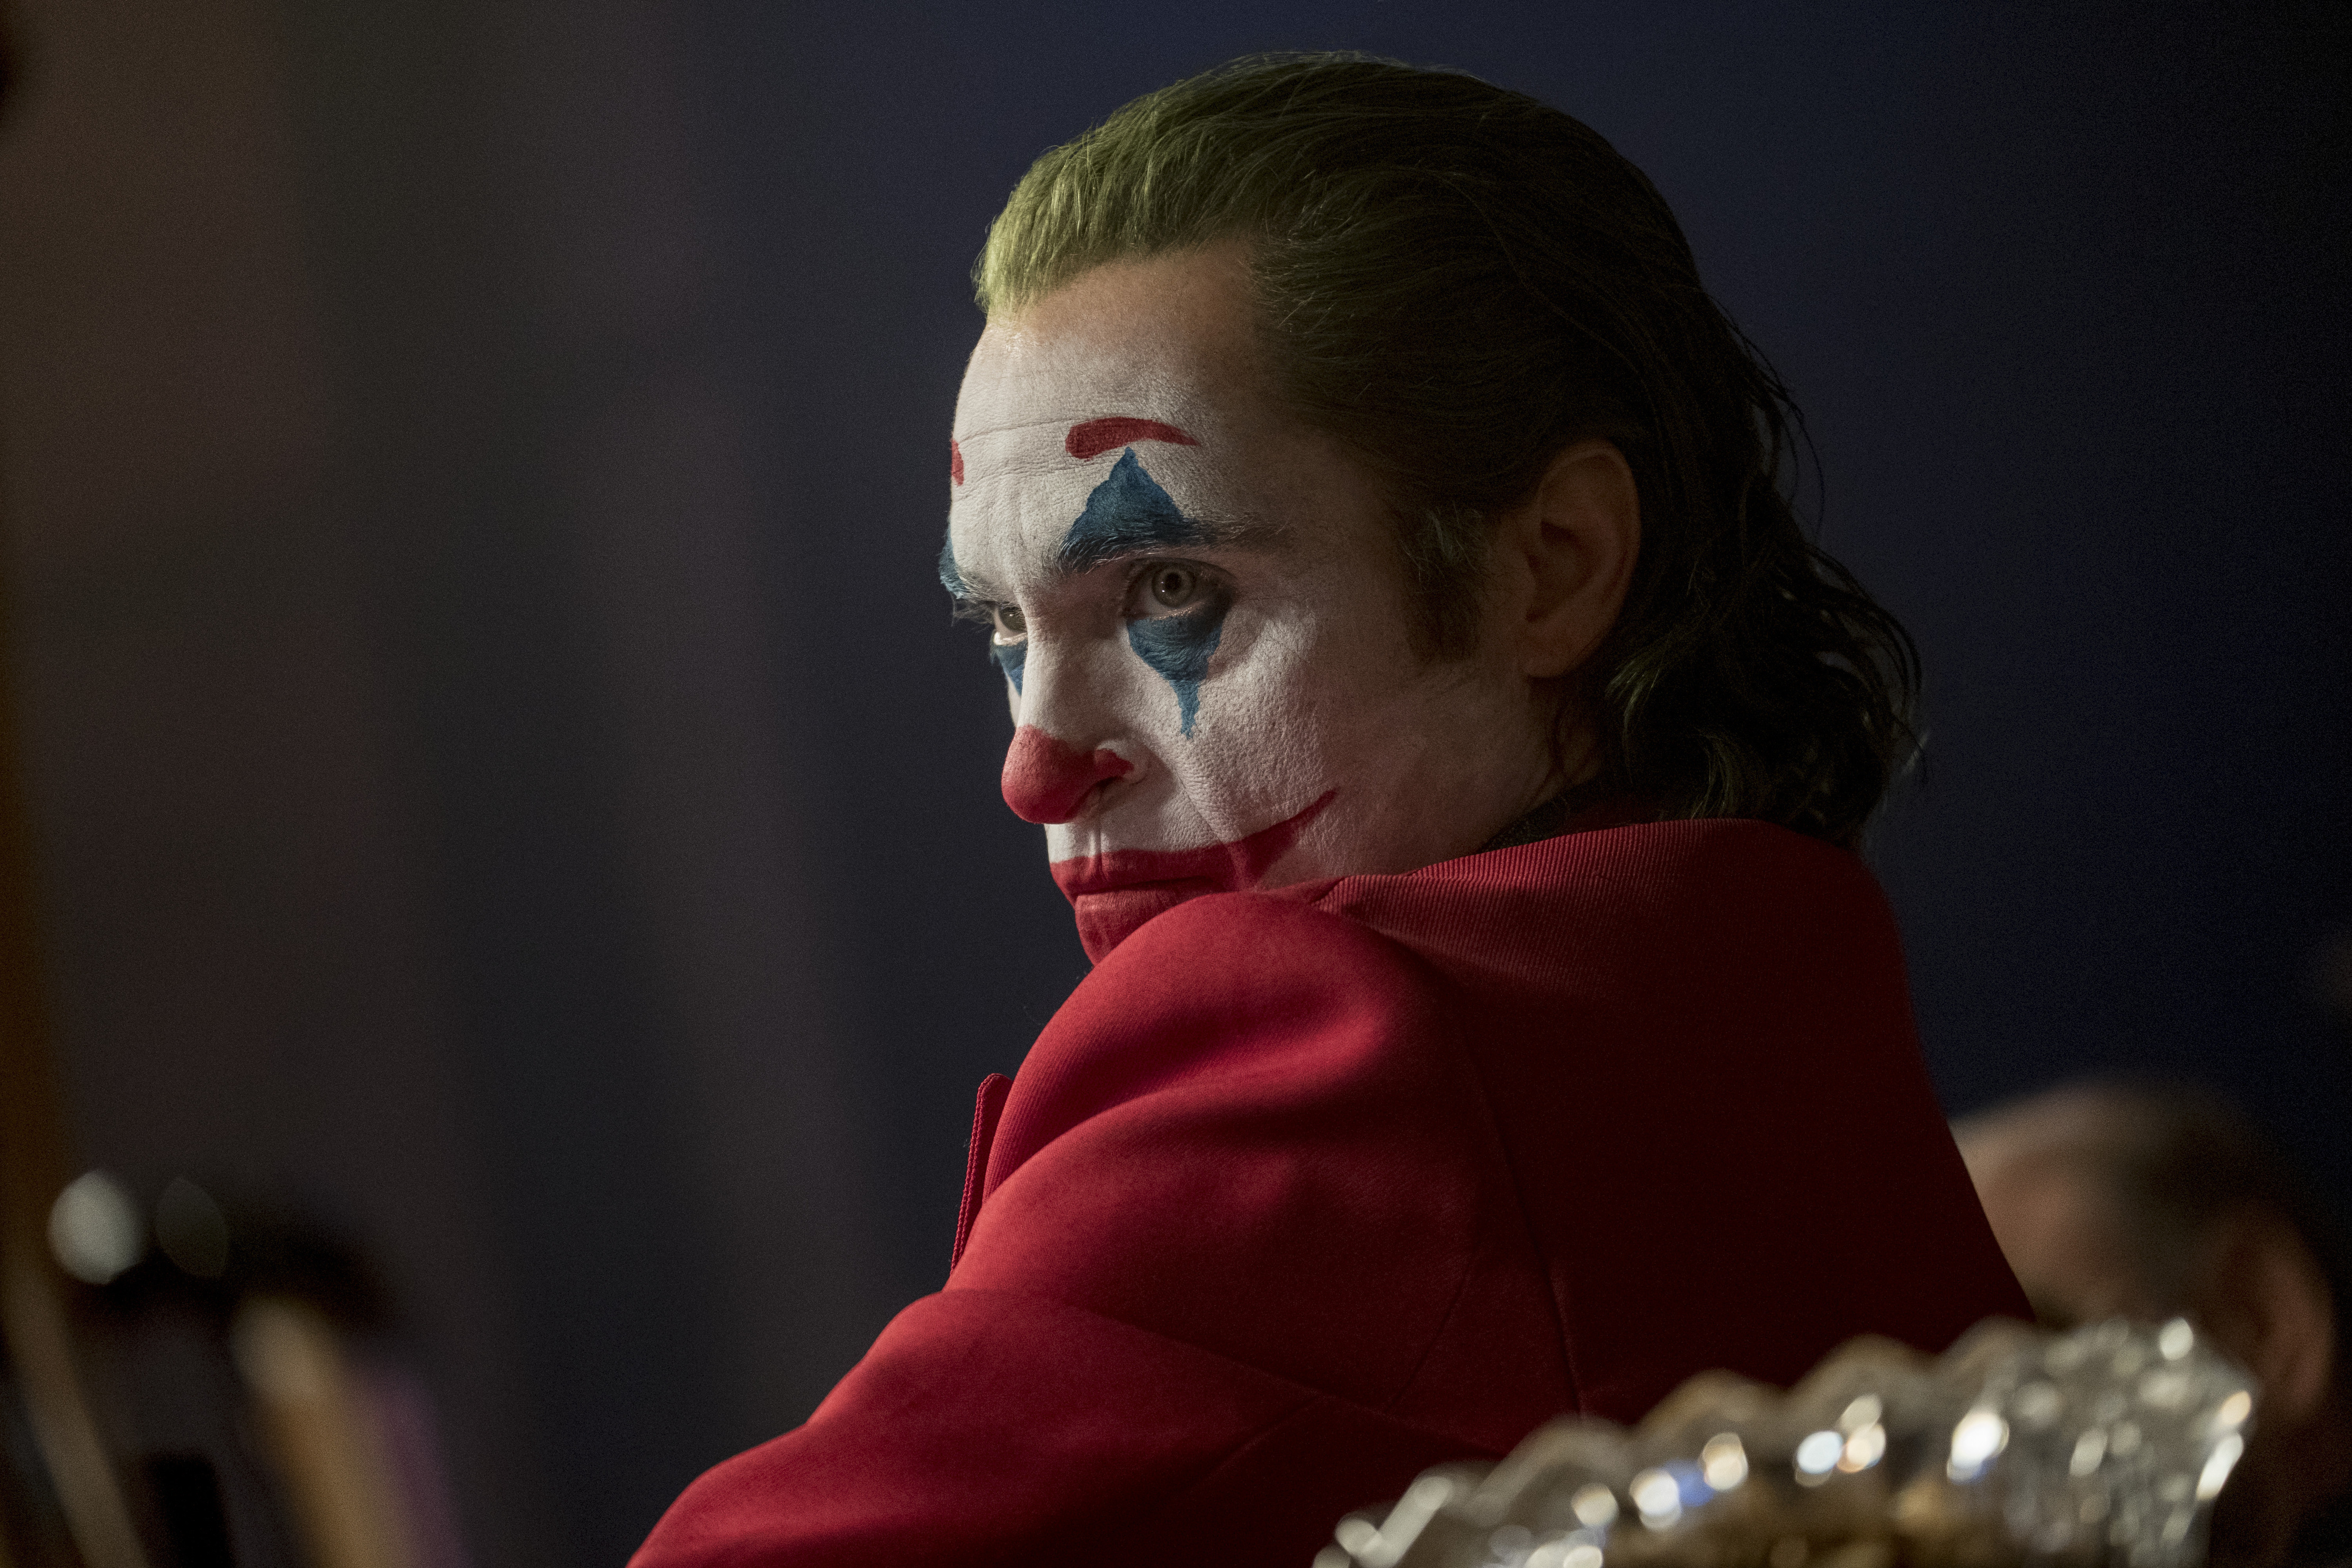 Why Joker Became One Of The Most Divisive Movies Of The Year The Washington Post